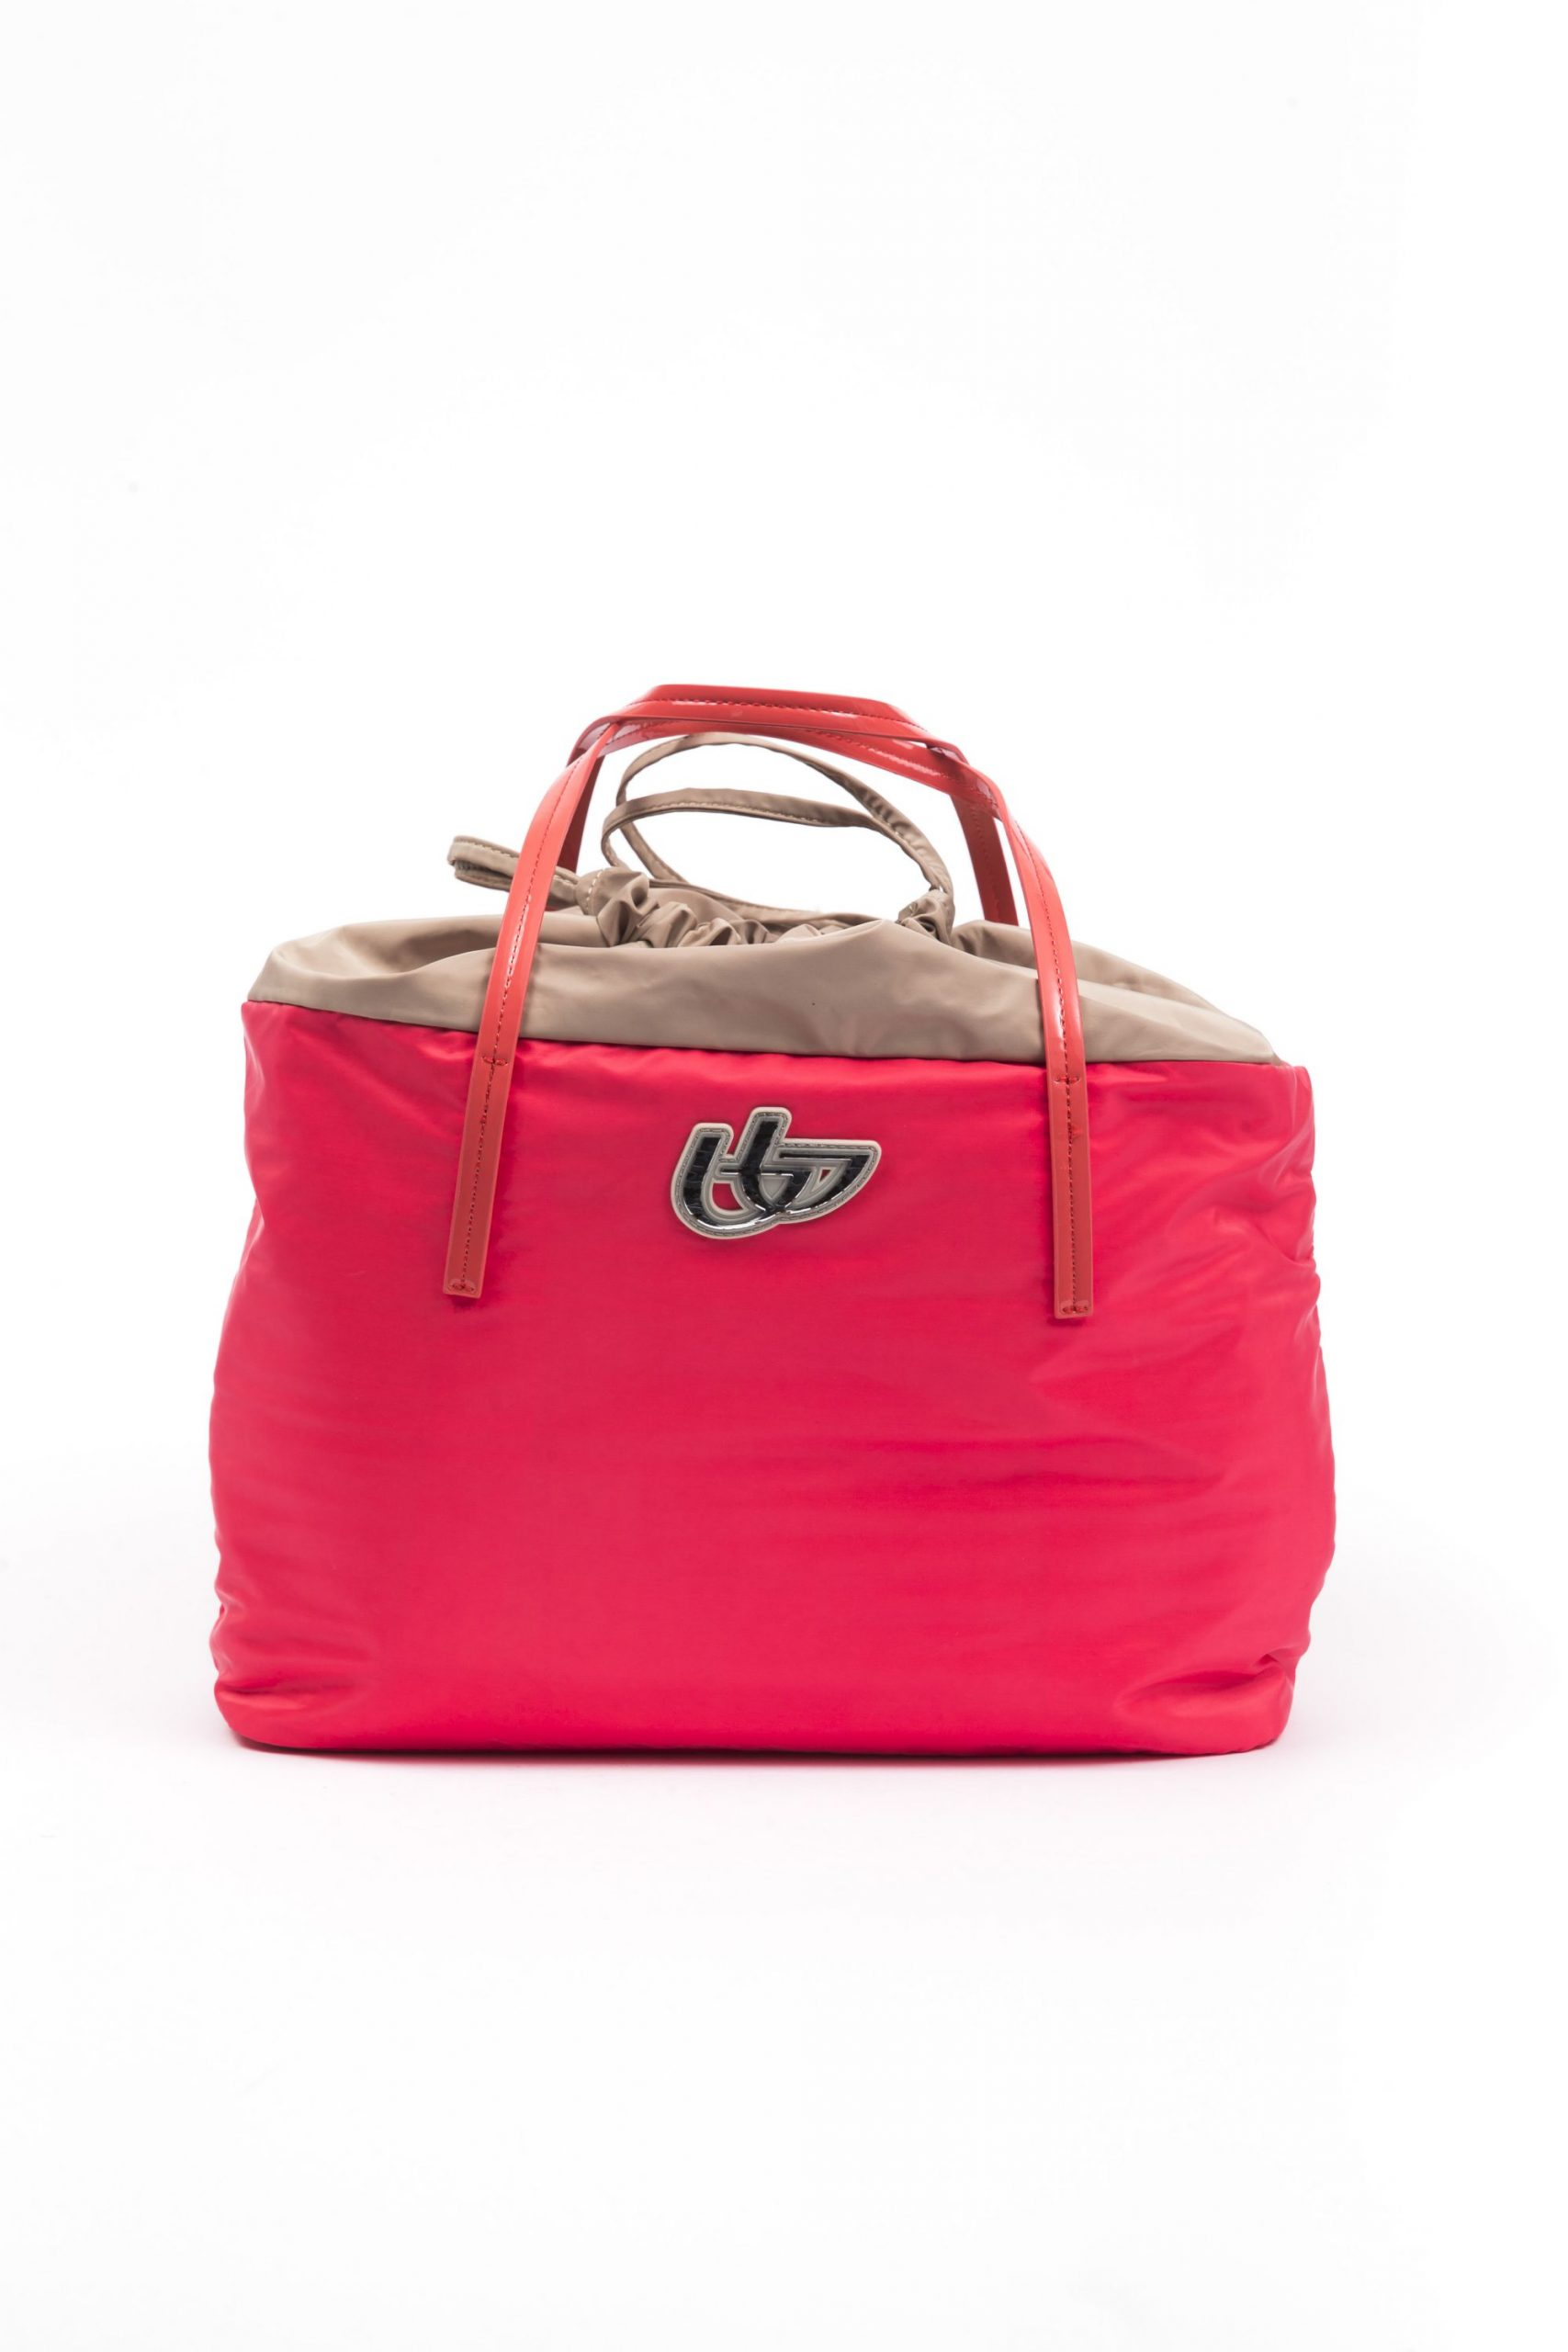 Byblos Women's Shopping Handbag Coral Red BY665683